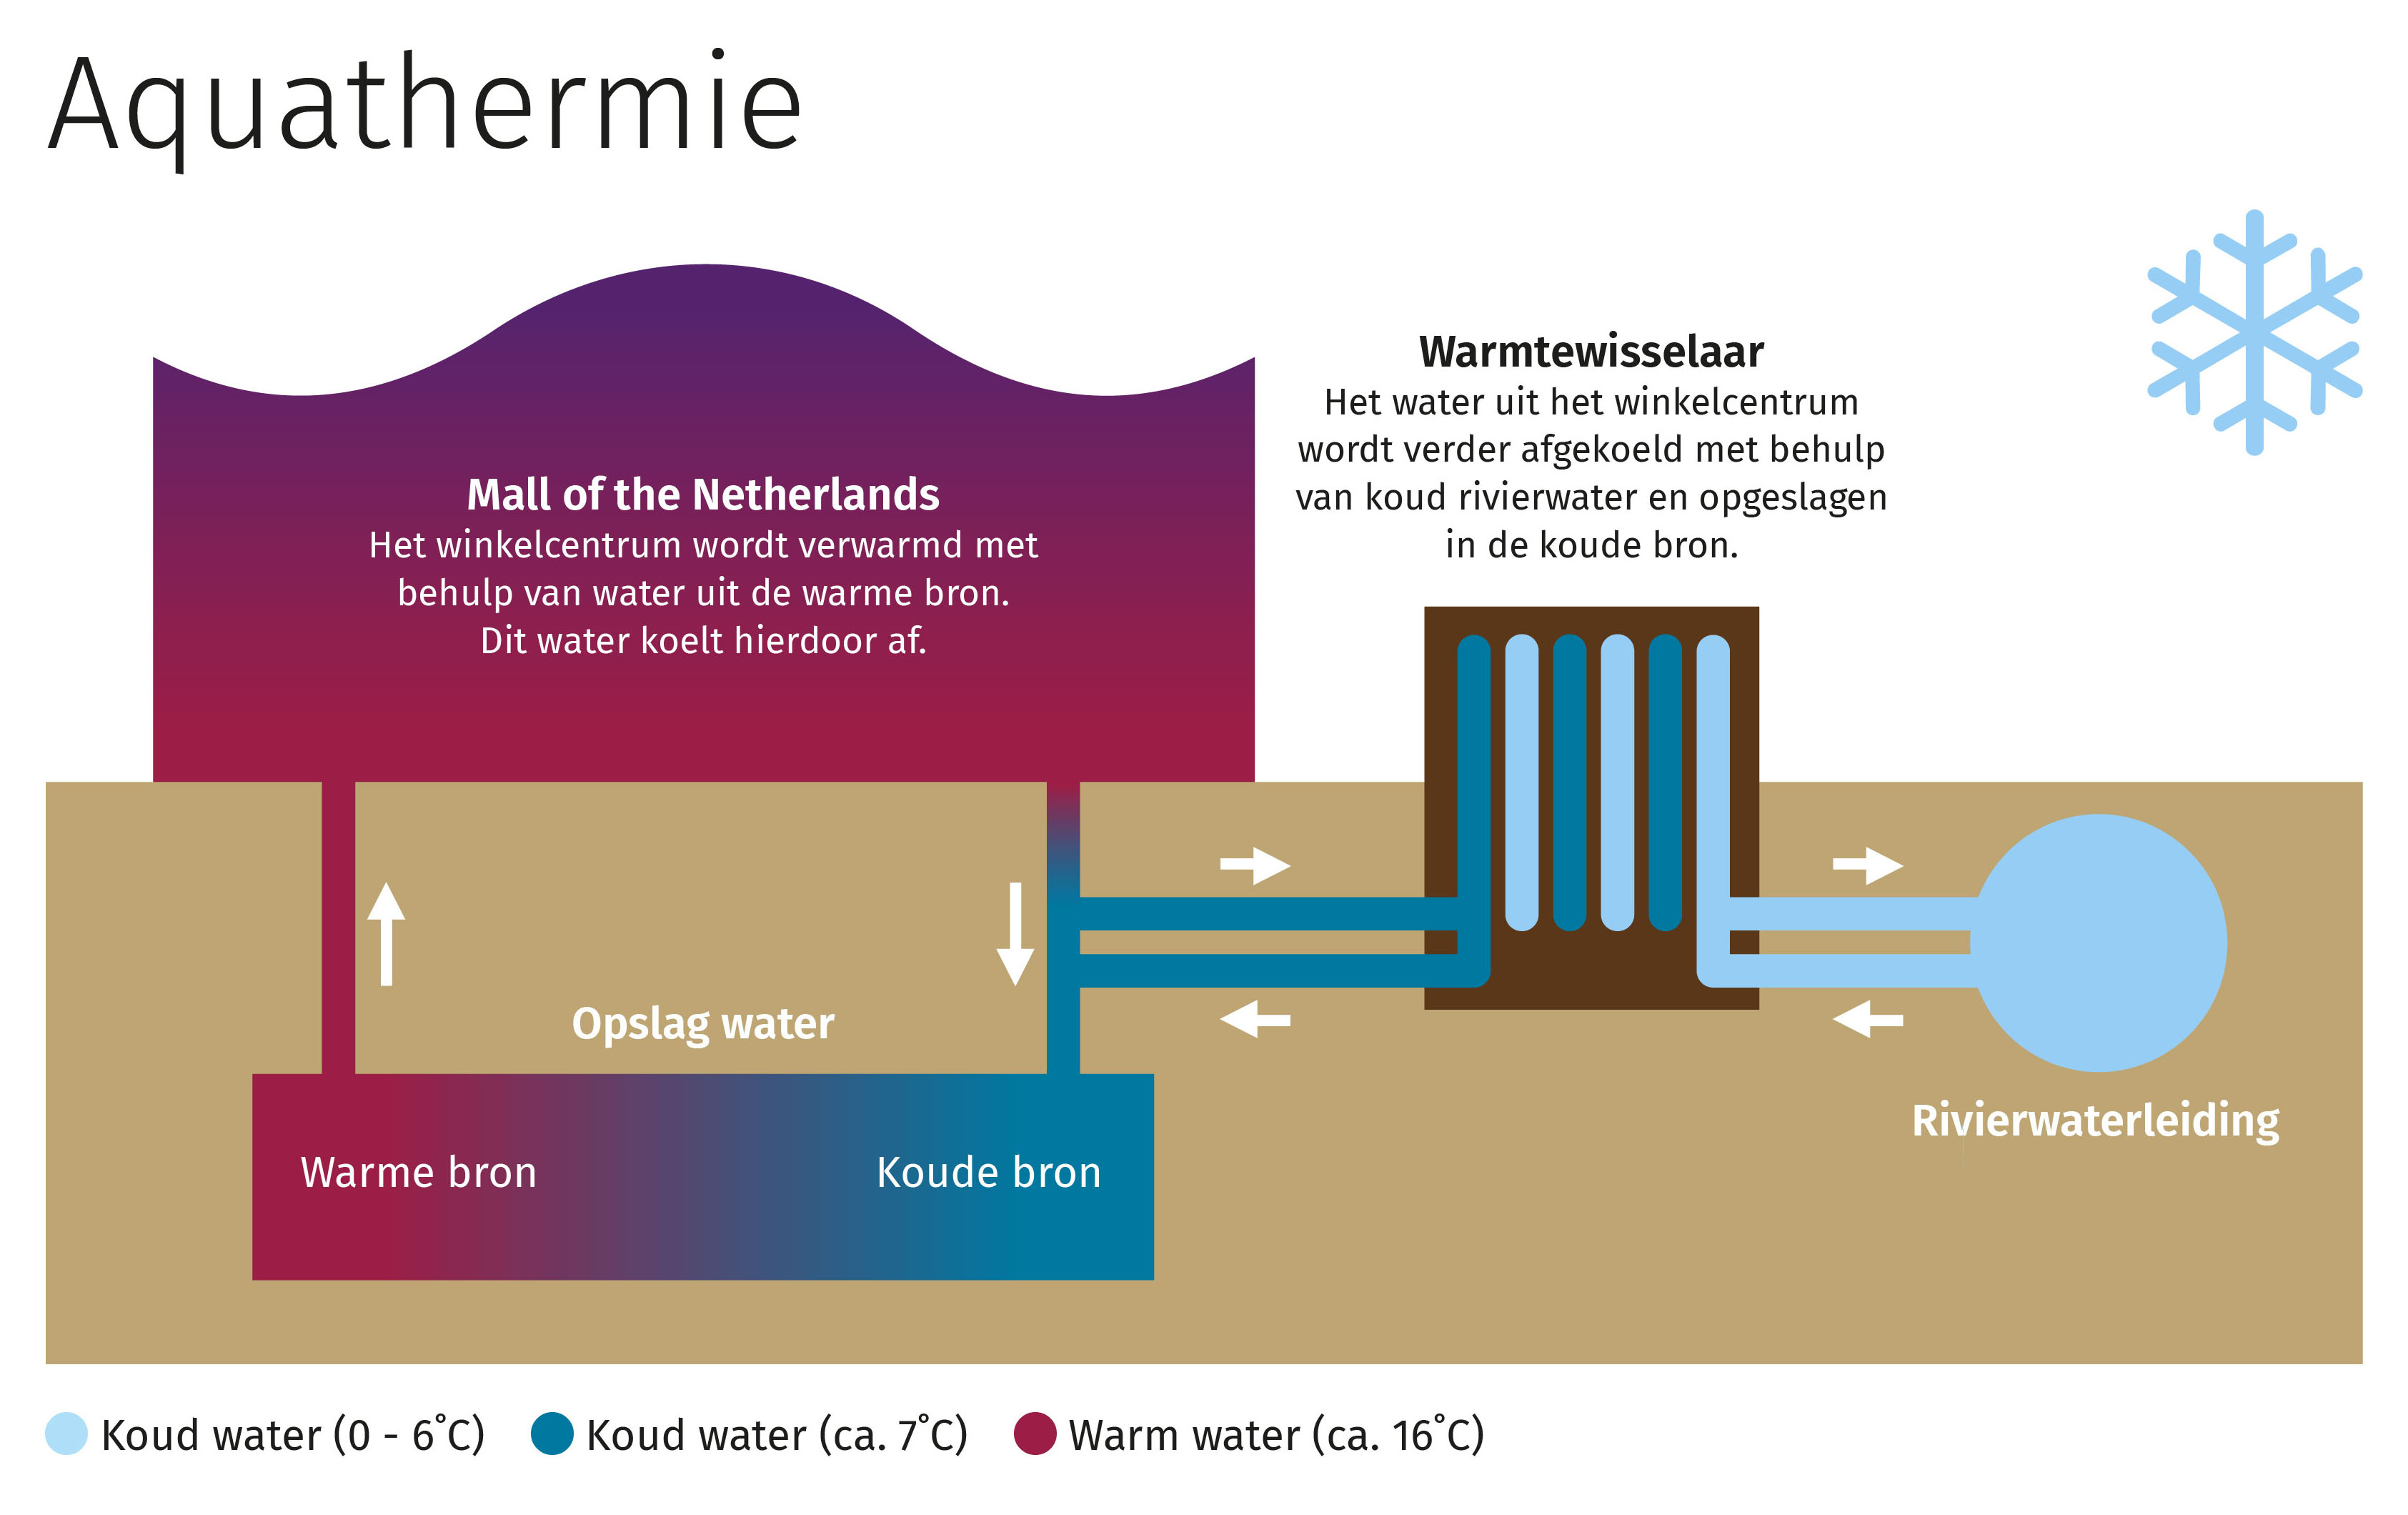 Aquathermie - Mall of the Netherlands